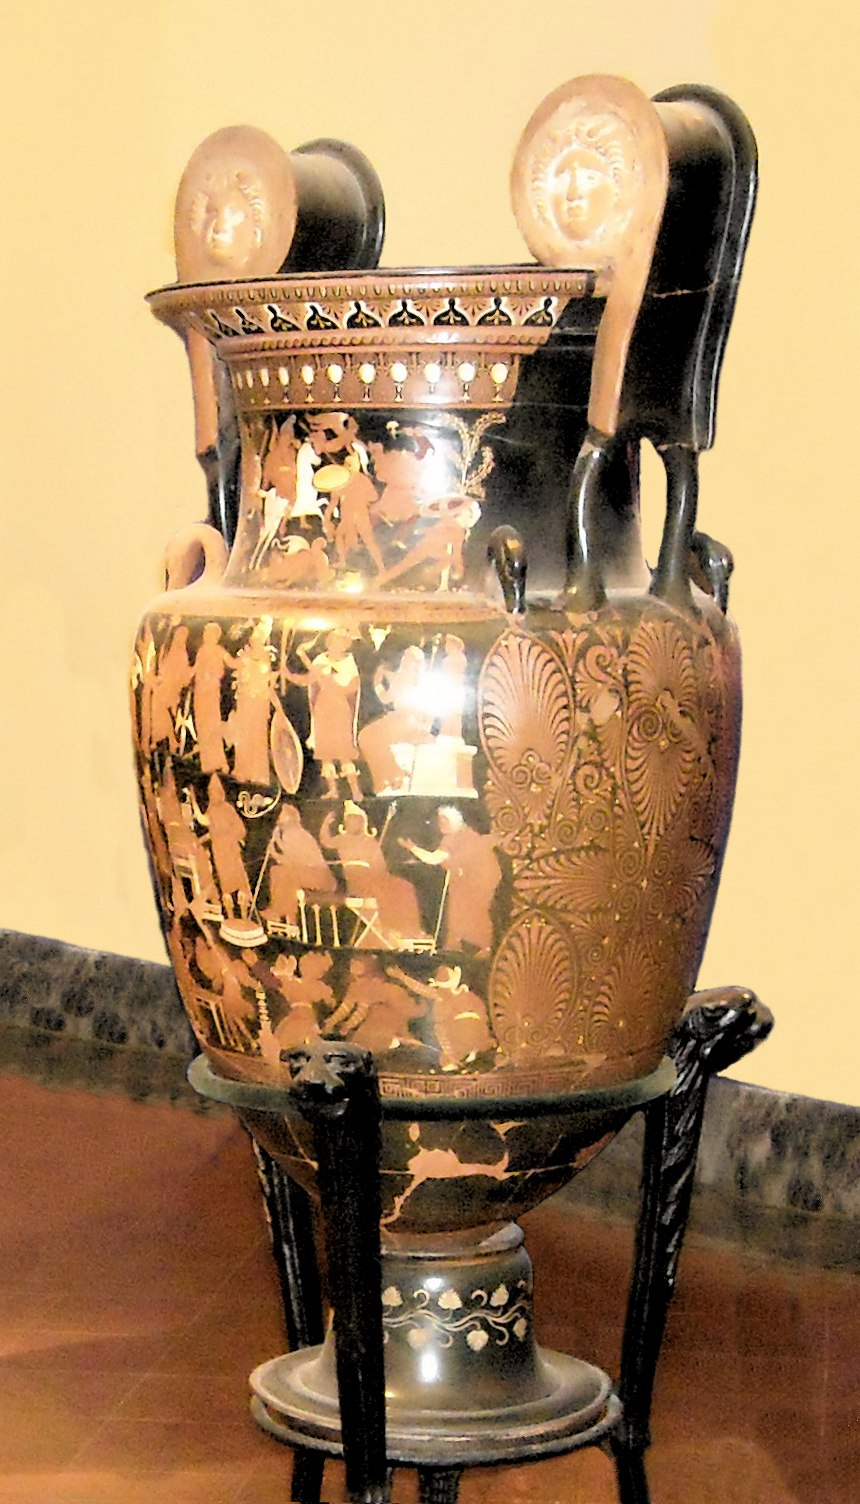 Darius vase Napoli Museum without background